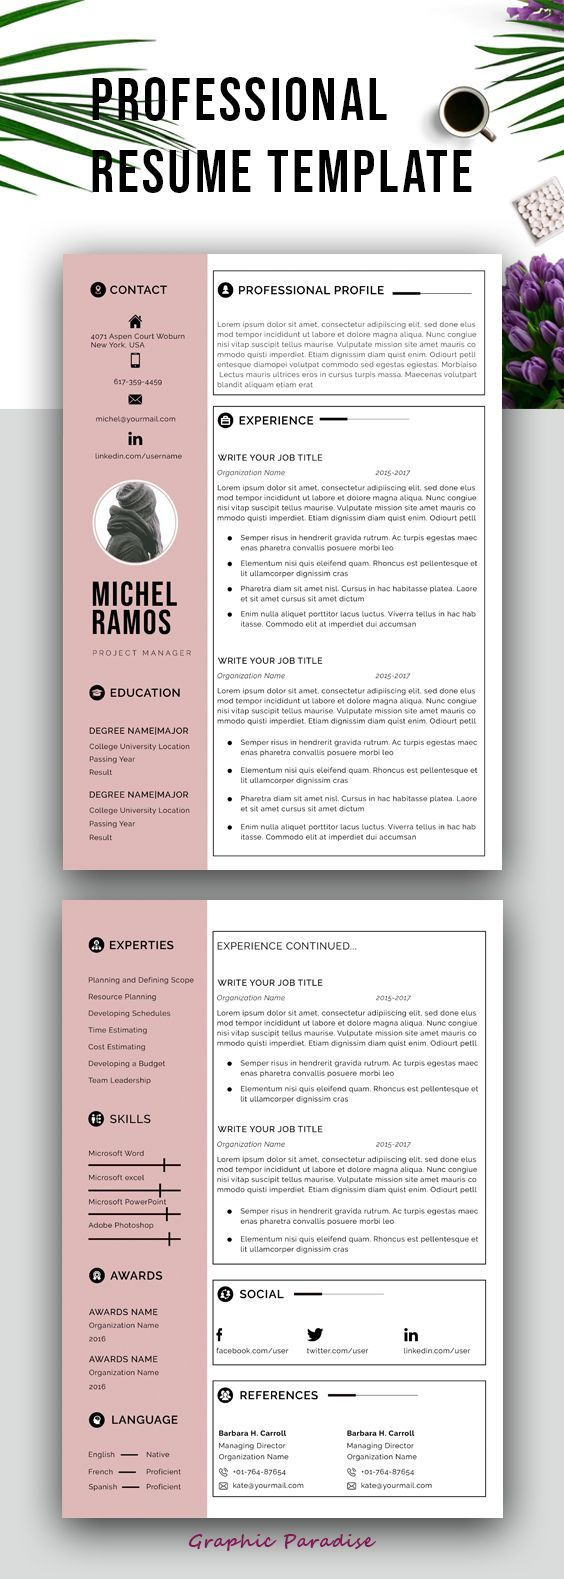 Professional Ms Word Resume Template Instant Download Matching Cover Letter 2 Page Resum Resume Template Professional Resume Template Cover Letter For Resume